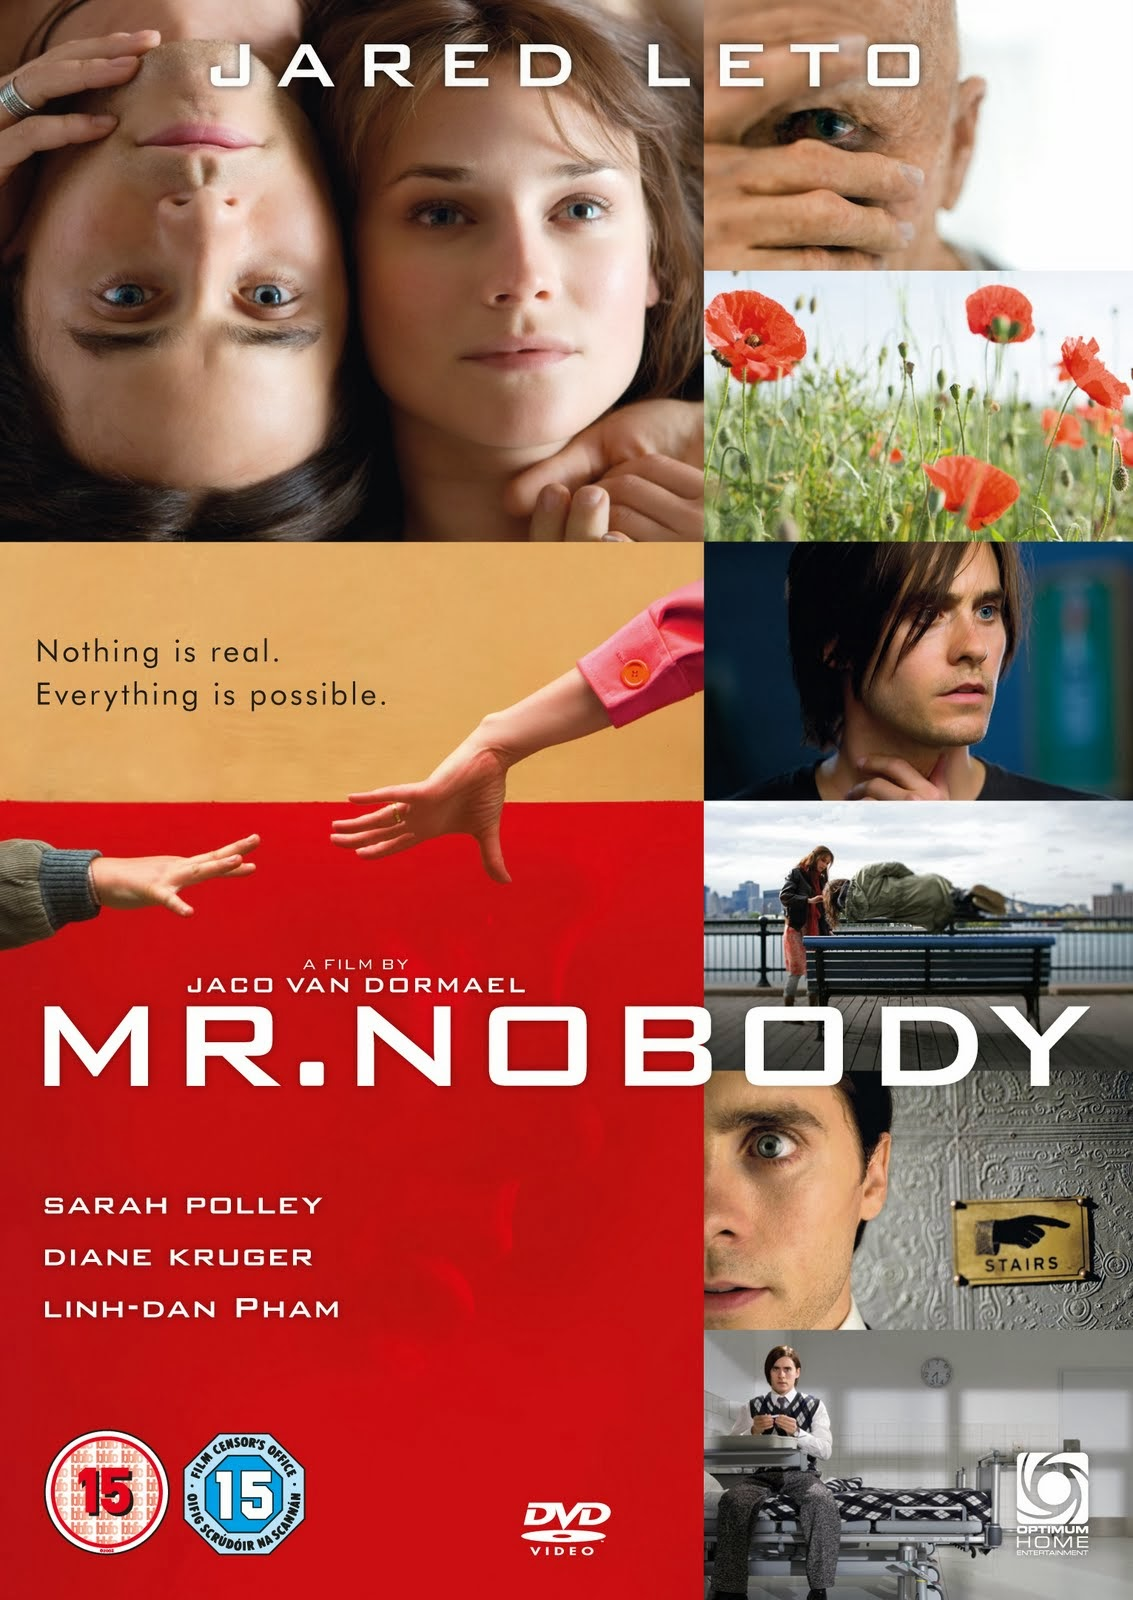 full hd watch mr. nobody online on putlocker live tv-streaming